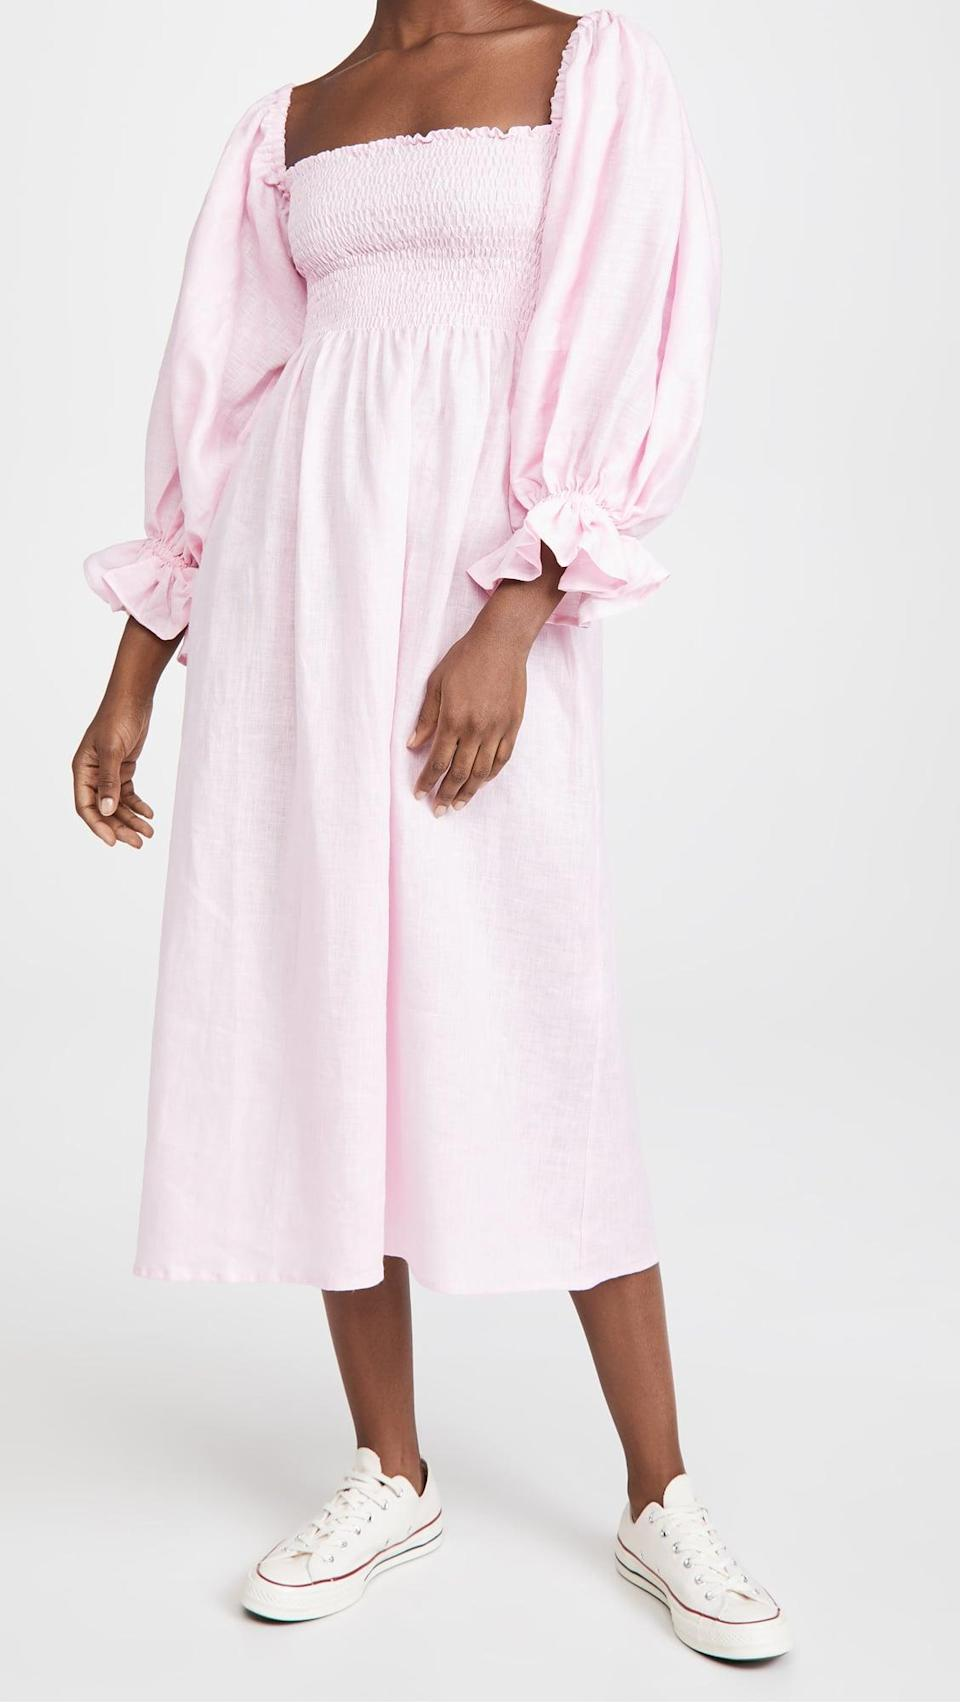 <p>We love everything about this <span>Sleeper Atlanta Linen Dress</span> ($320), which can be worn as a dress or nightgown.</p>